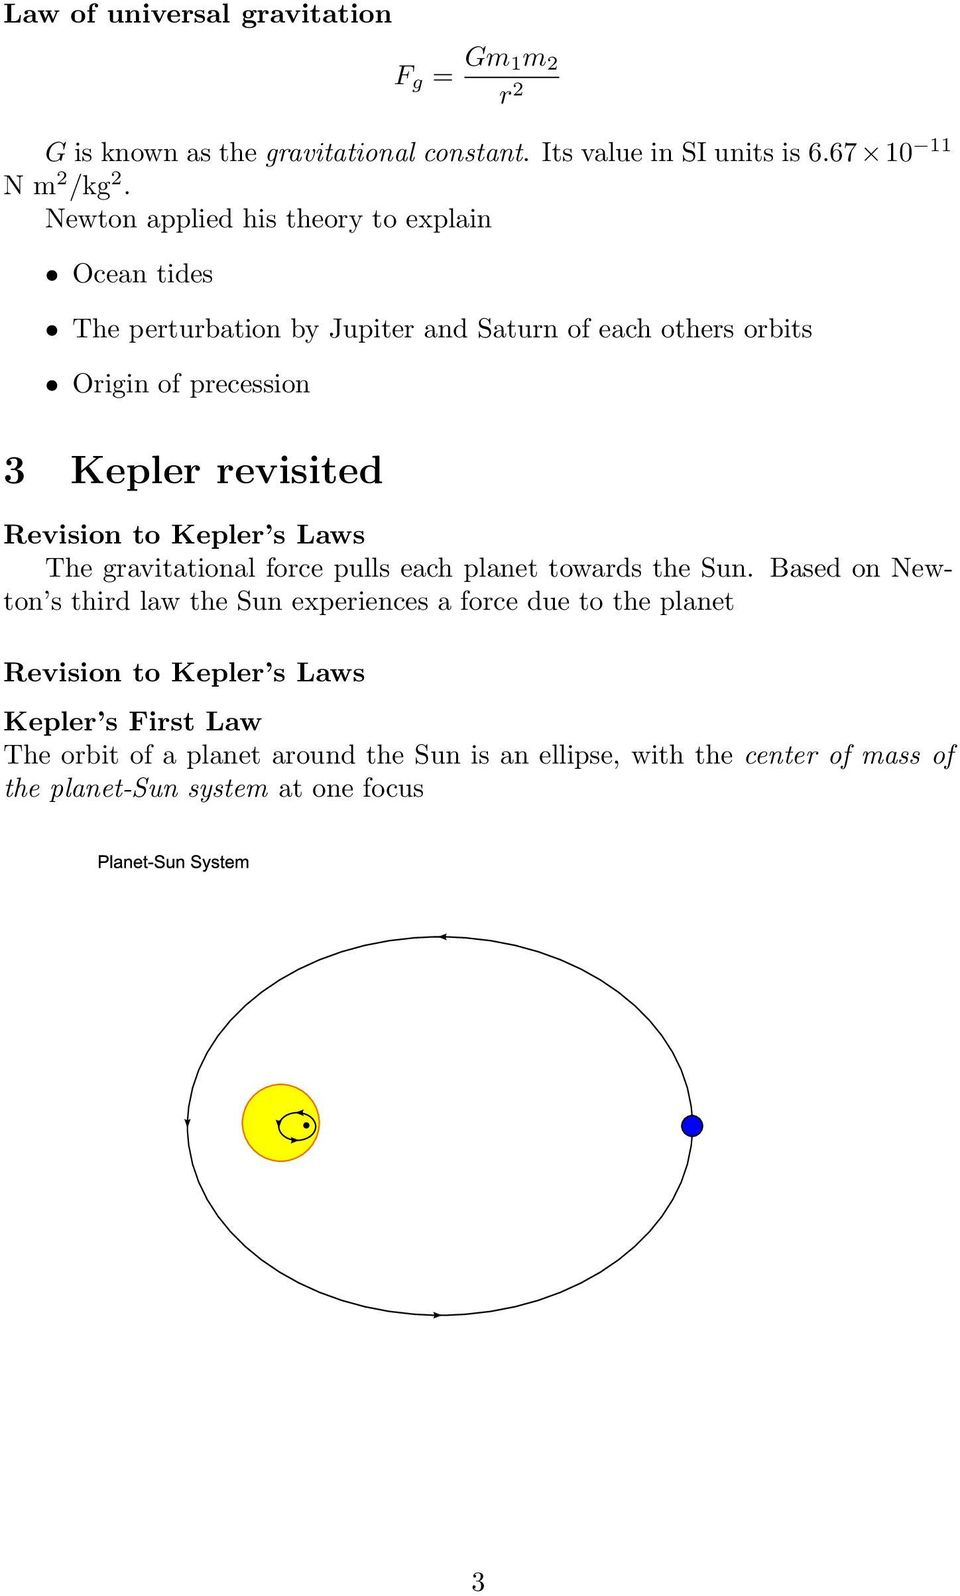 Revision to Kepler s Laws The gravitational force pulls each planet towards the Sun.